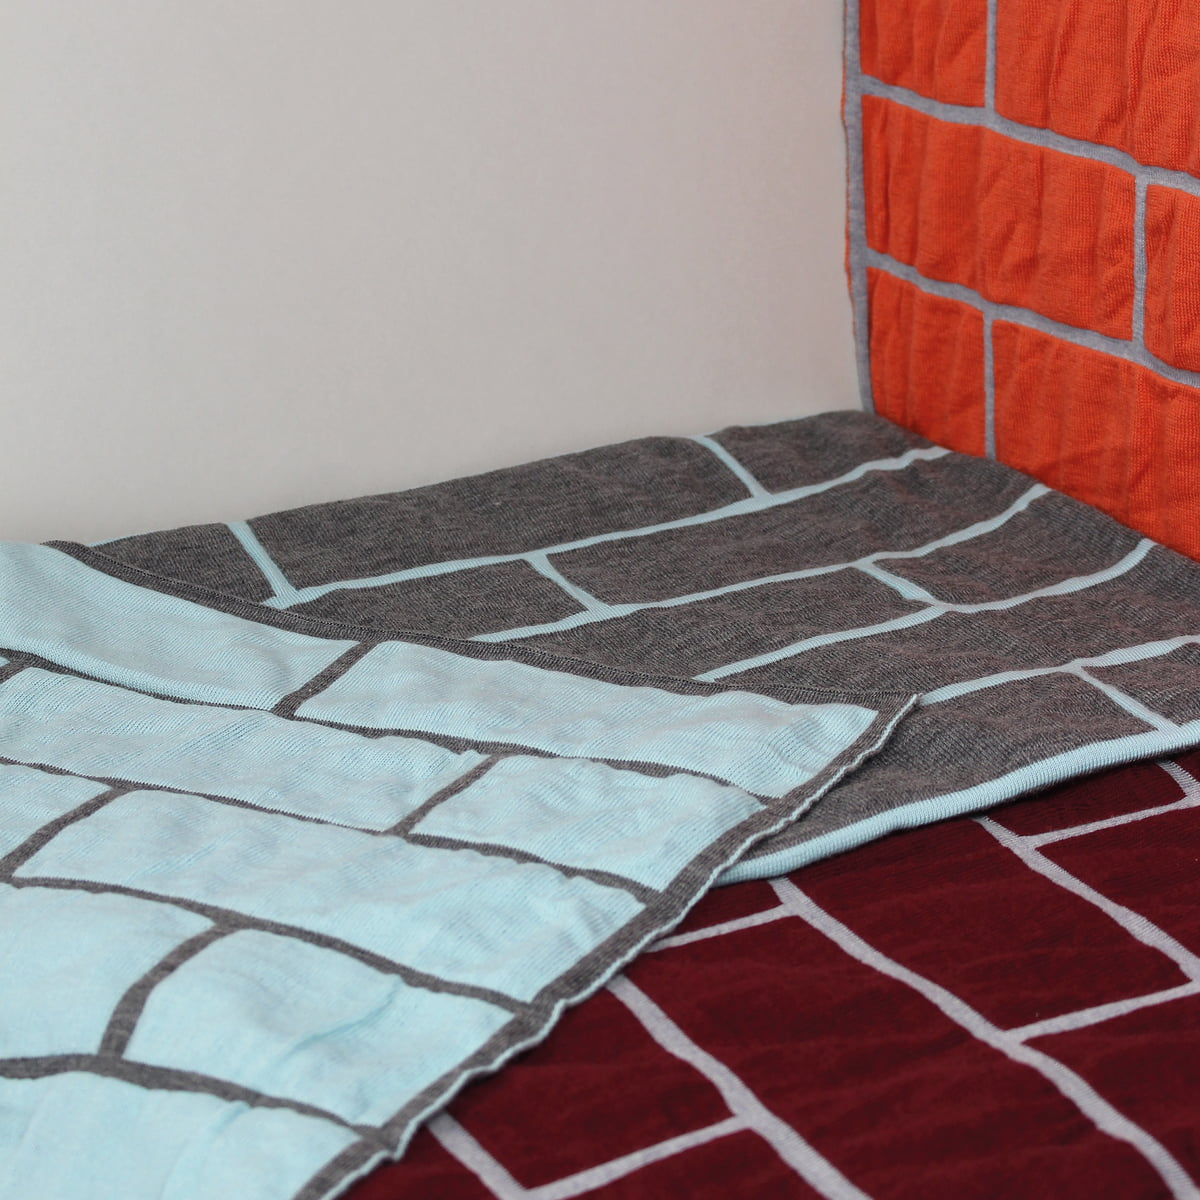 Brick blanket by Pulpo at the design shop